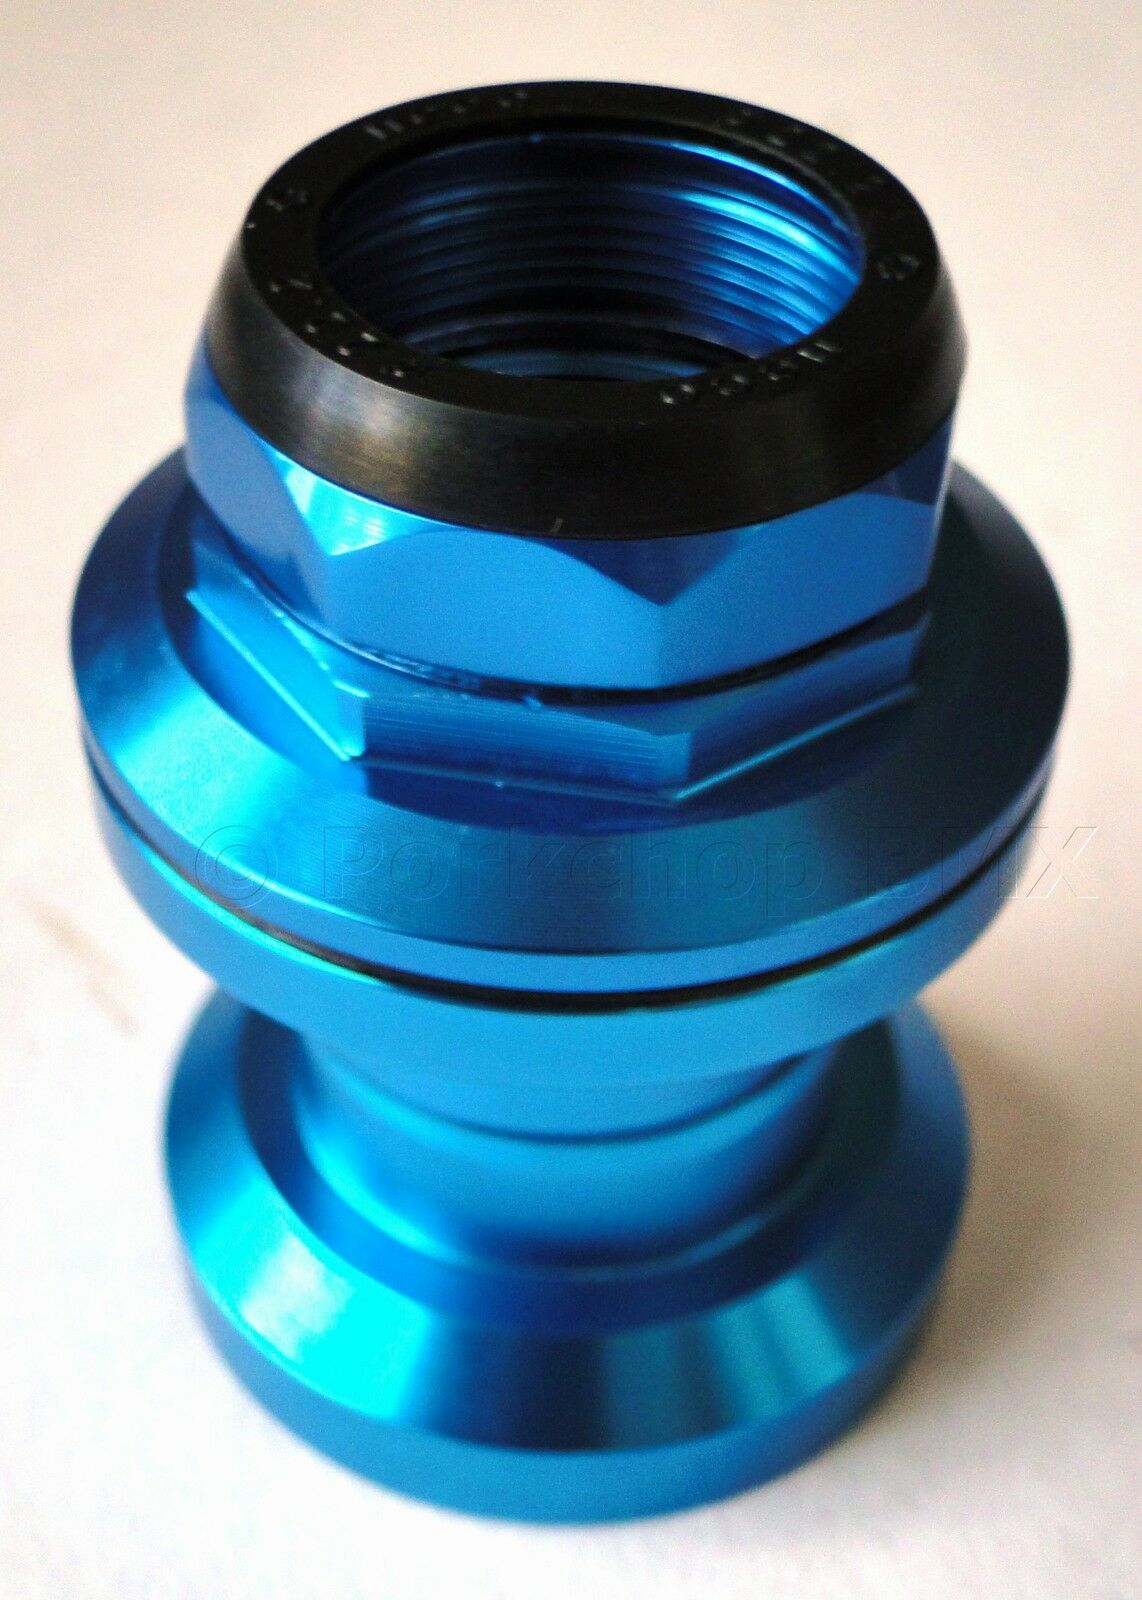 Aluminum bicycle road bike headset 1  threaded 30.0mm cups 26.4mm crown blueeE